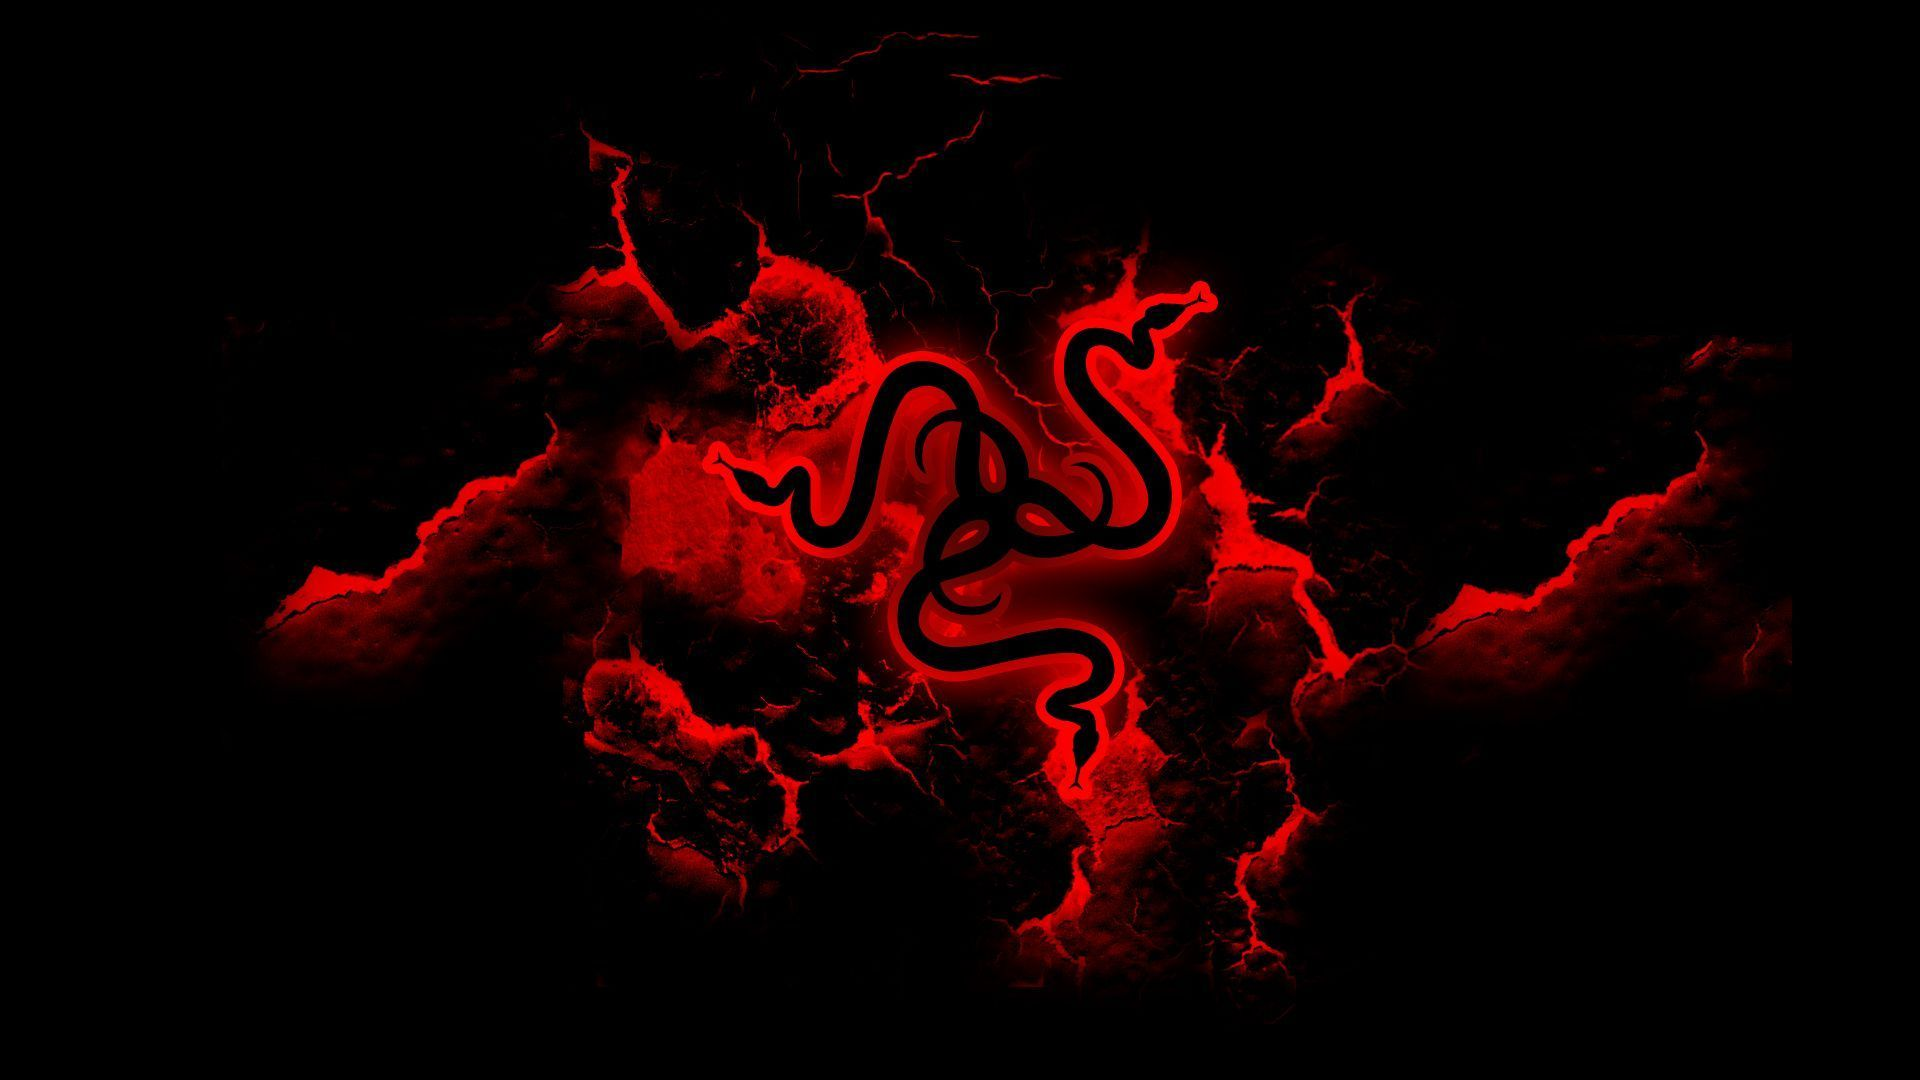 10 New Razer Wallpaper Hd 1080p Full Hd 1080p For Pc Background Wallpaper Backgrounds Black Phone Wallpaper Razer